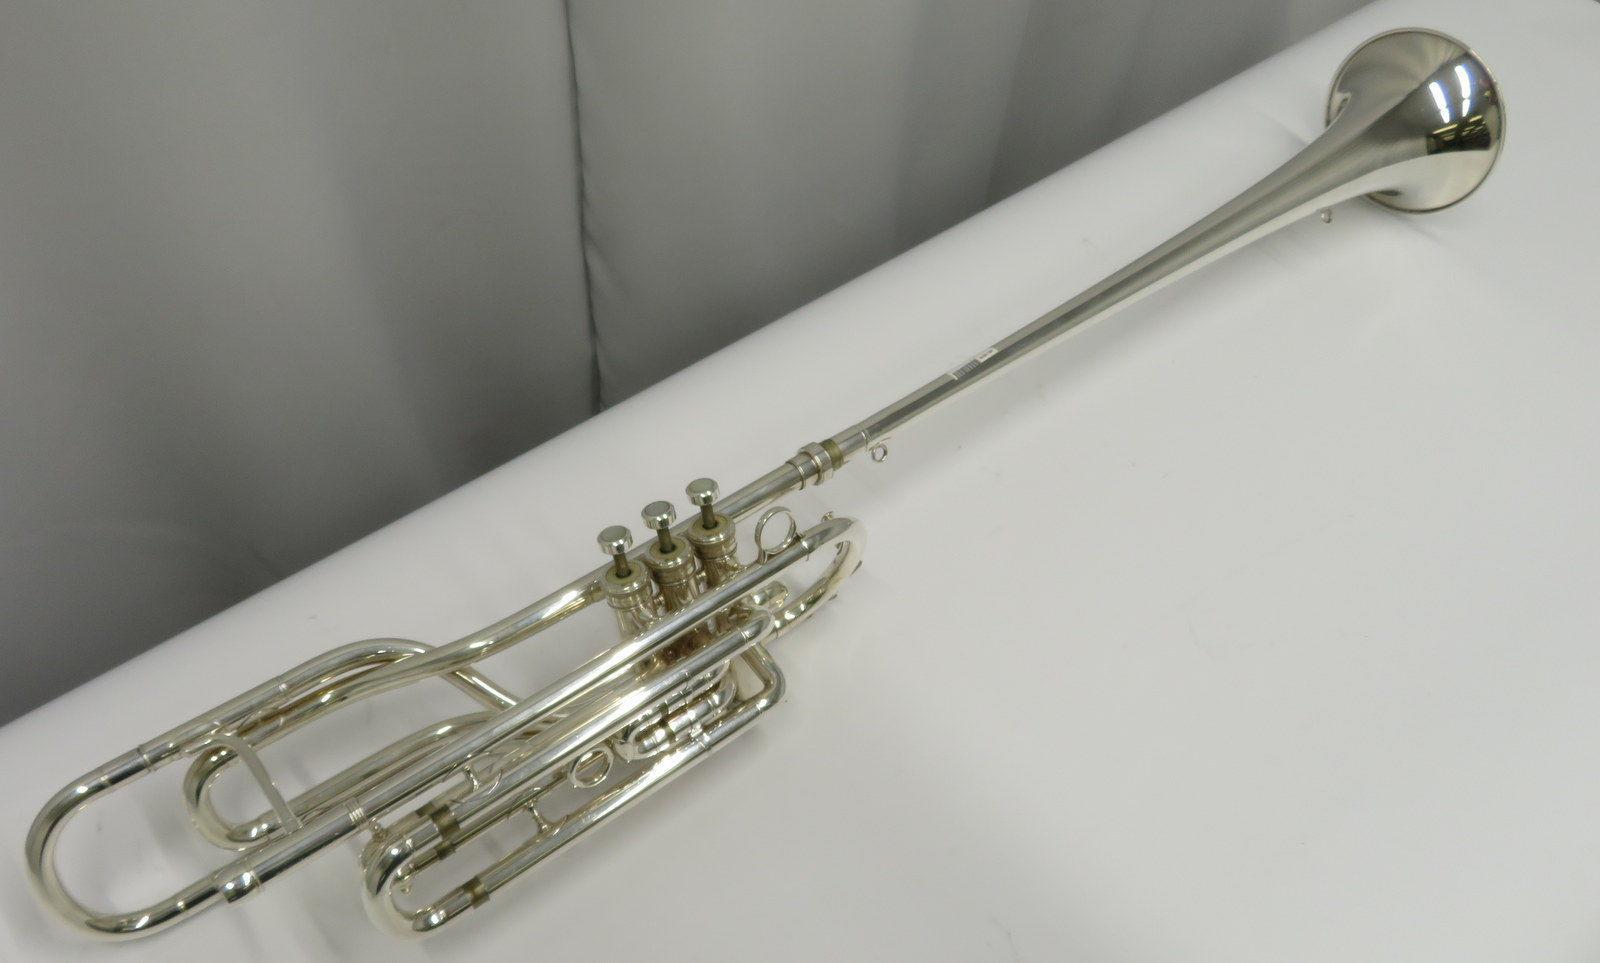 Lot 9 - Besson International BE707 fanfare trumpet with case. Serial number: 884160.